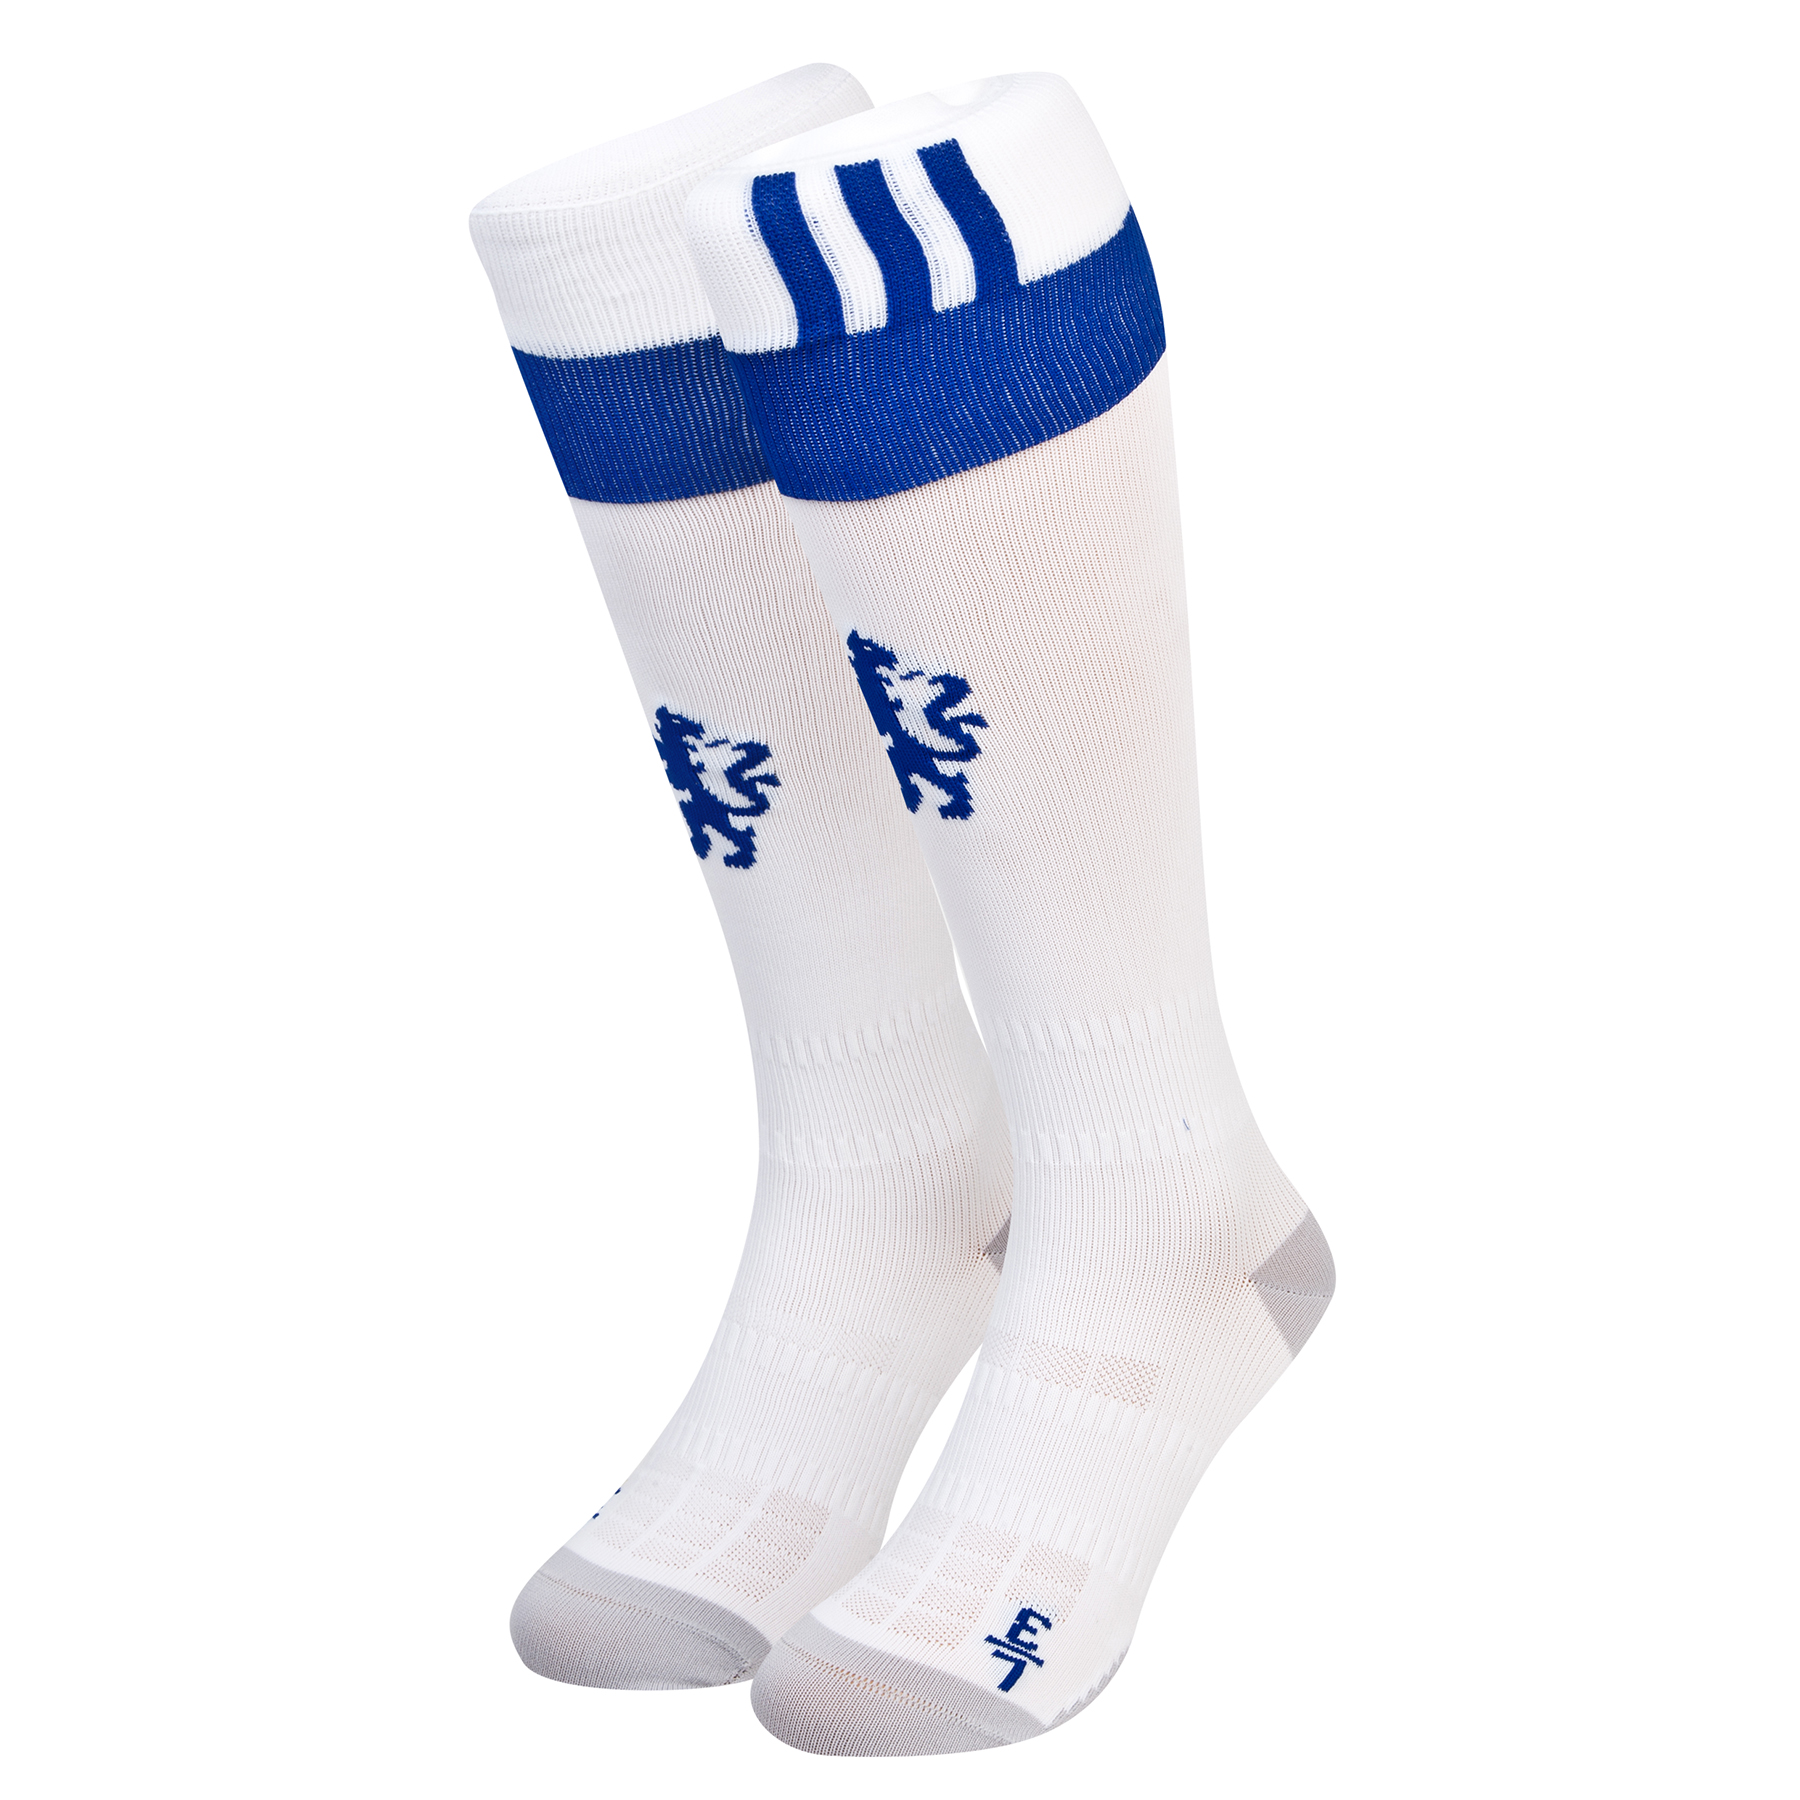 Chelsea Home/3rd Socks 2016-17   Complete your professional Chelsea home/third kit look with the official Chelsea Home/3rd Socks 2016-17.   With anatomically-placed cushioning to support and protect those high stress areas, these 2016-17 Chelsea home/third socks benefit further from mesh ventilation inserts.   Benefits:   Official Chelsea 2016-17 home/3rd socks Socks with anatomically-placed cushioning Left/right sock with mesh ventilation inserts 67% polyester/29% polyamide/4% elasthane